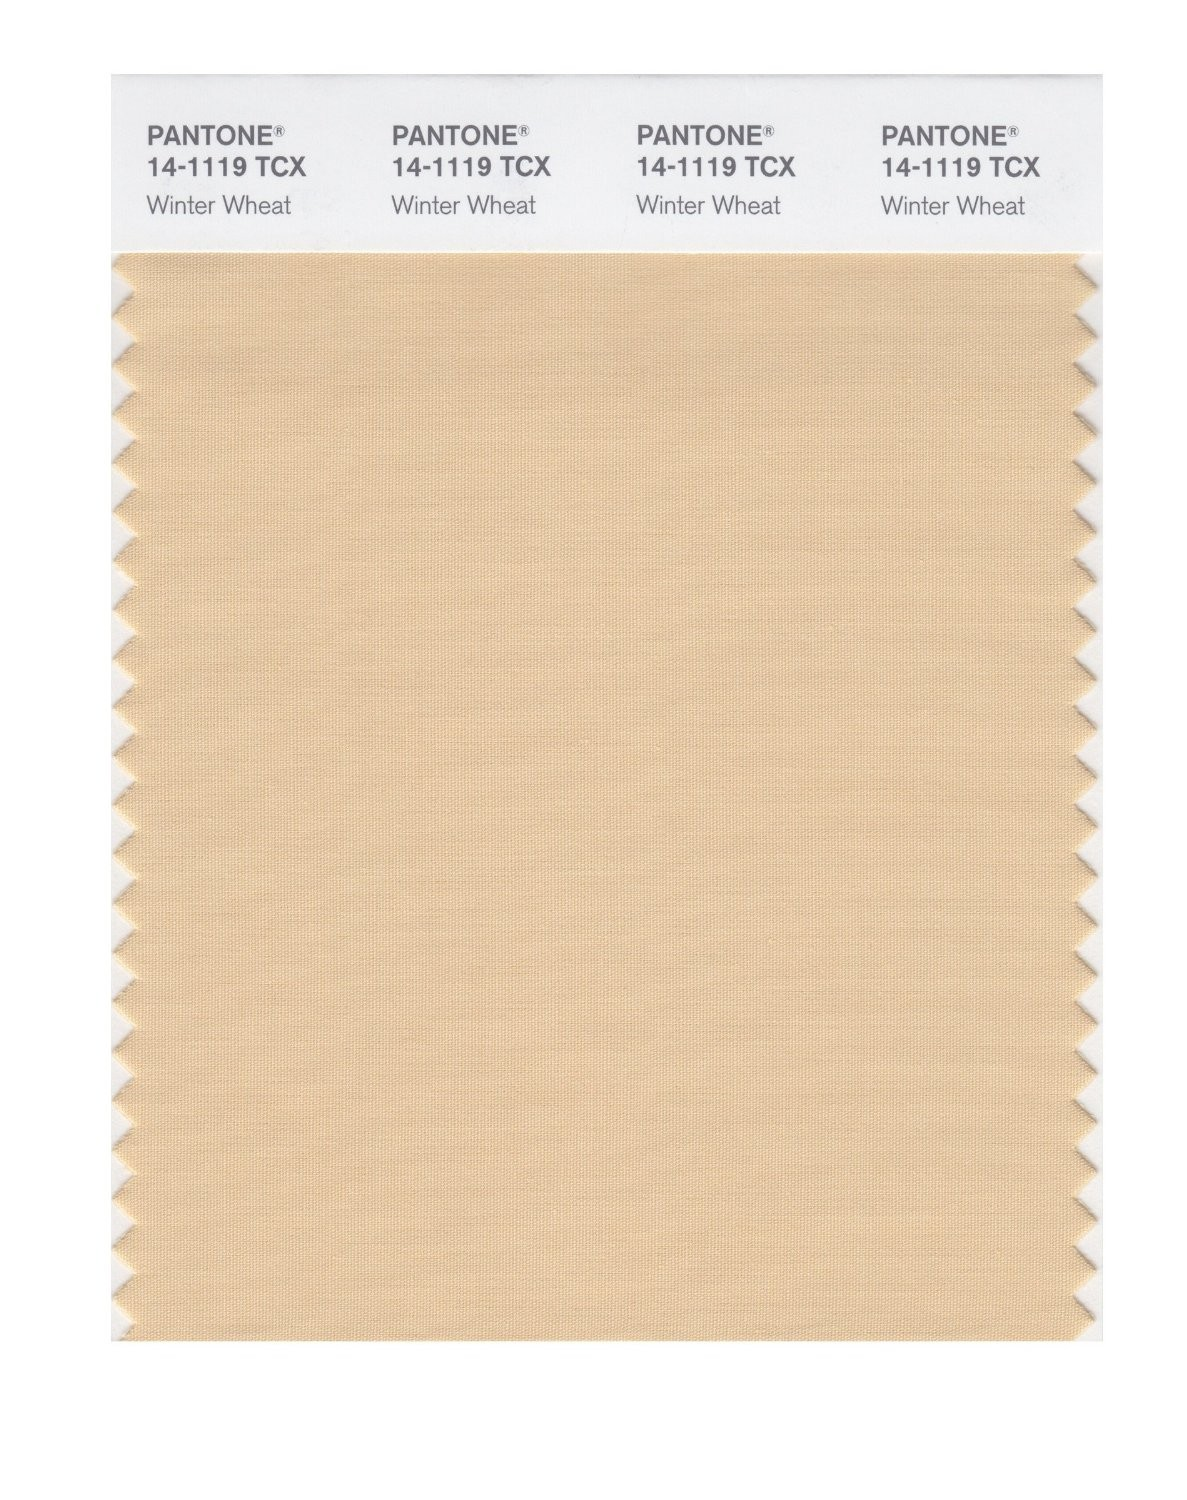 Pantone 14-1119 TCX Swatch Card Winter Wheat